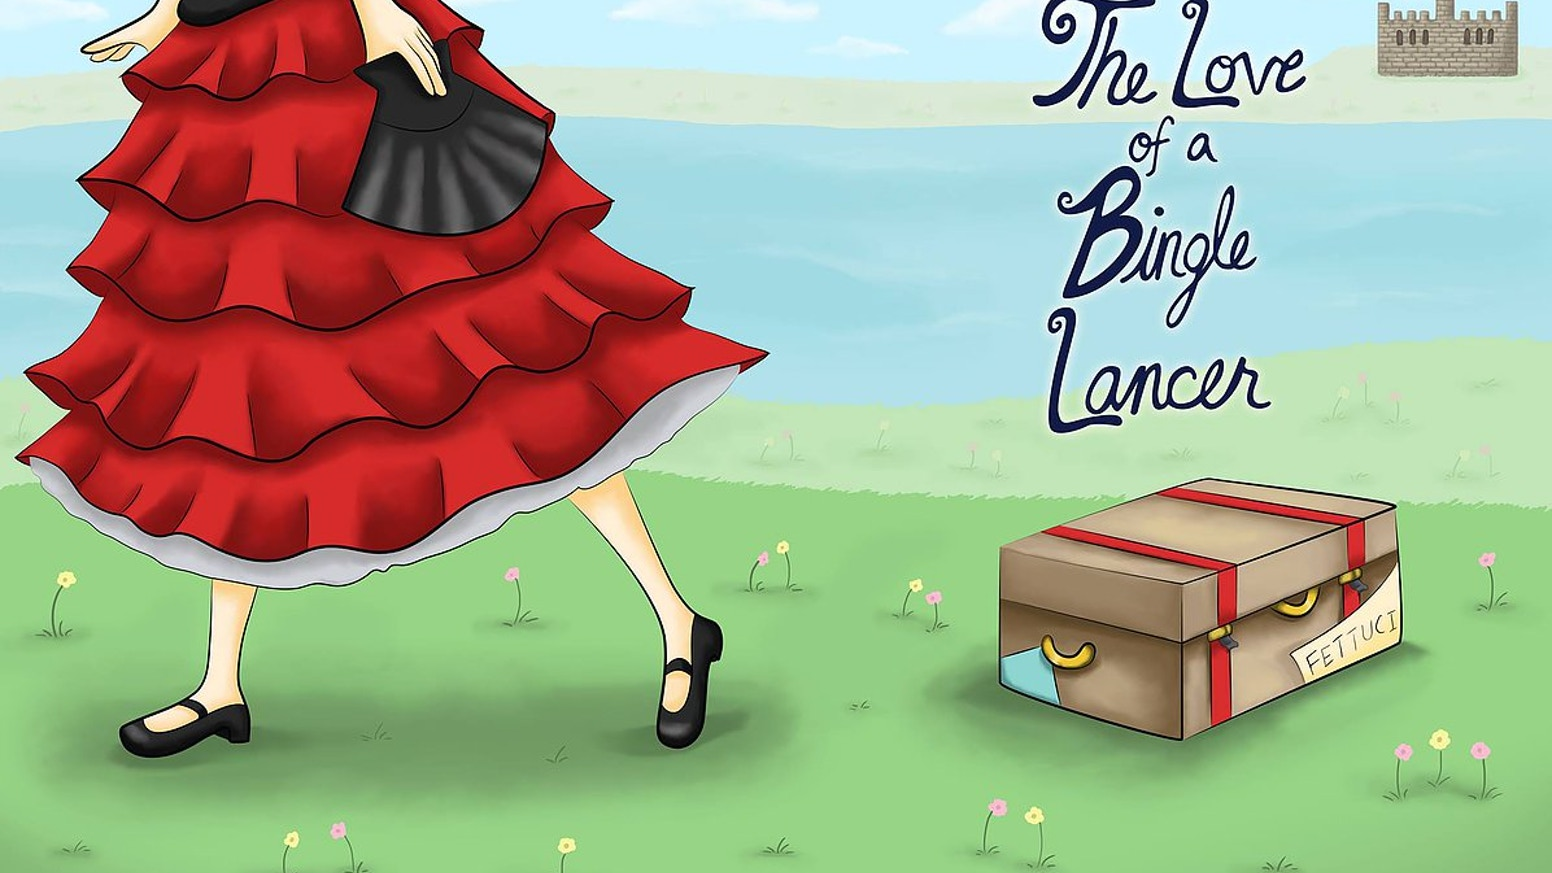 Love conquers all in this Children's Poetry Book that will touch the hearts of dancers, lancers, and romancers. Pick up a copy today!